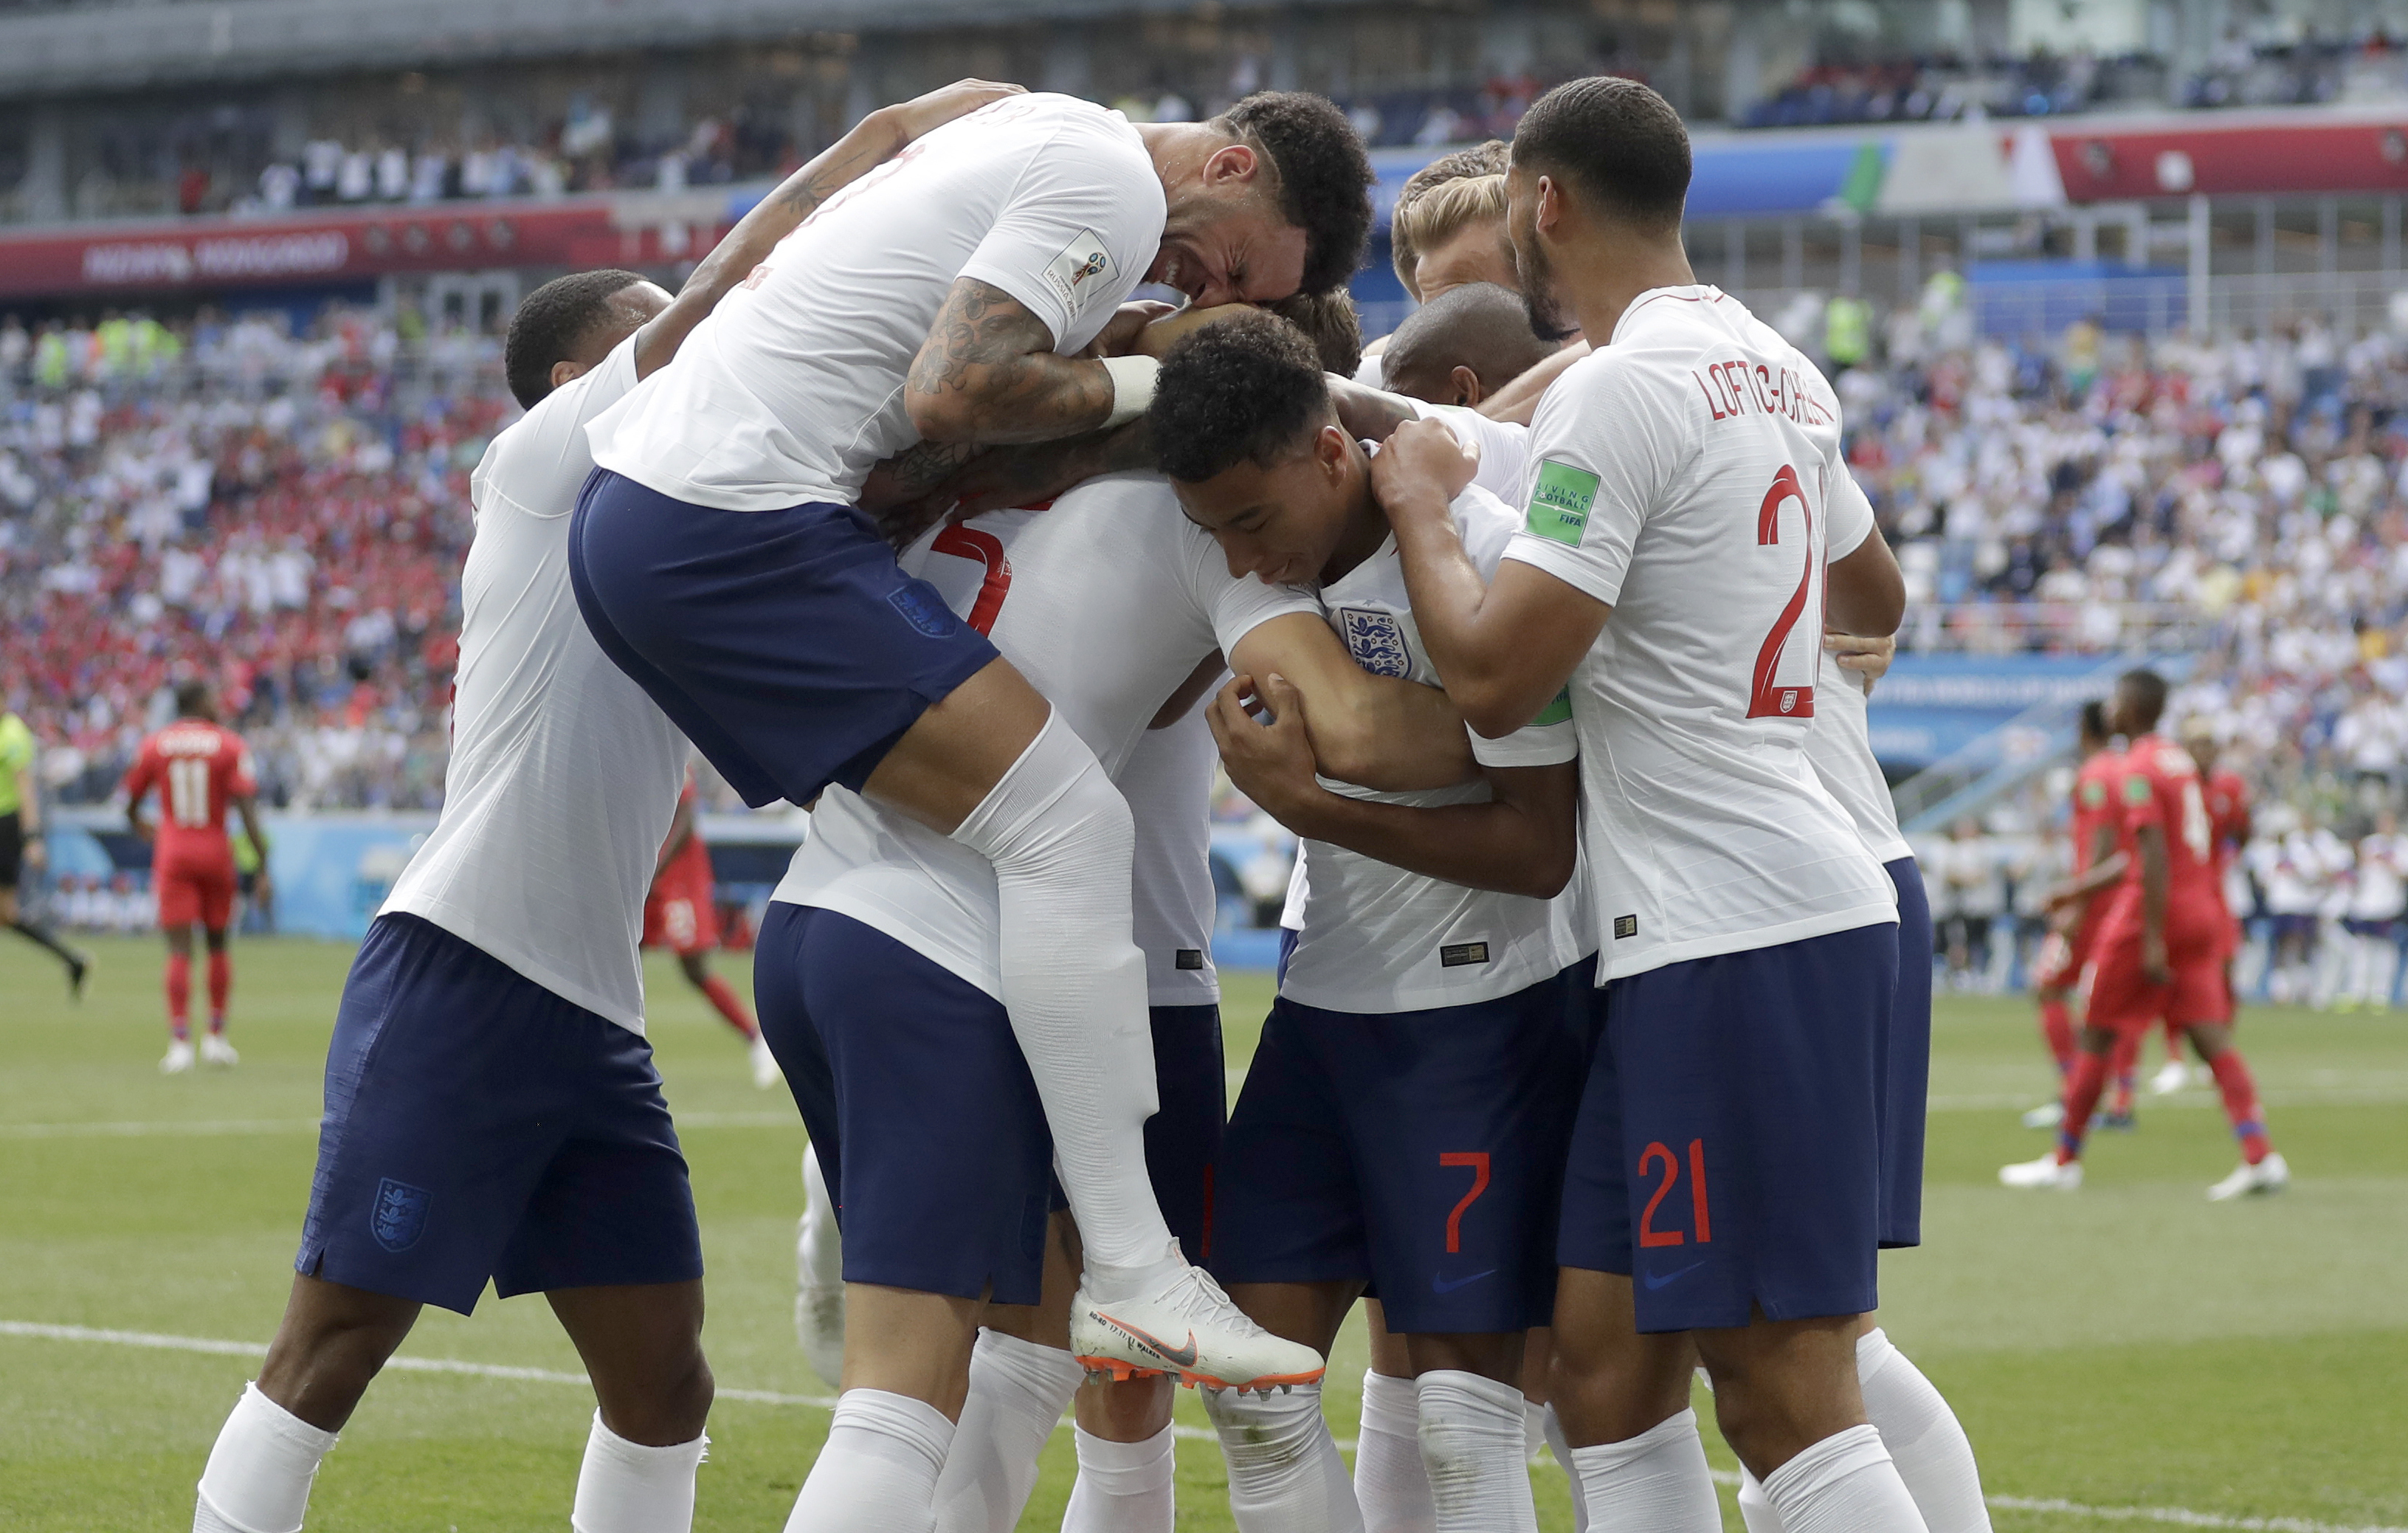 <div class='meta'><div class='origin-logo' data-origin='none'></div><span class='caption-text' data-credit='Matthias Schrader/AP Photo'>England players run to teammate John Stones after he scored his team's first goal during the group G match against Panama at the Nizhny Novgorod Stadium on Sunday, June 24, 2018.</span></div>